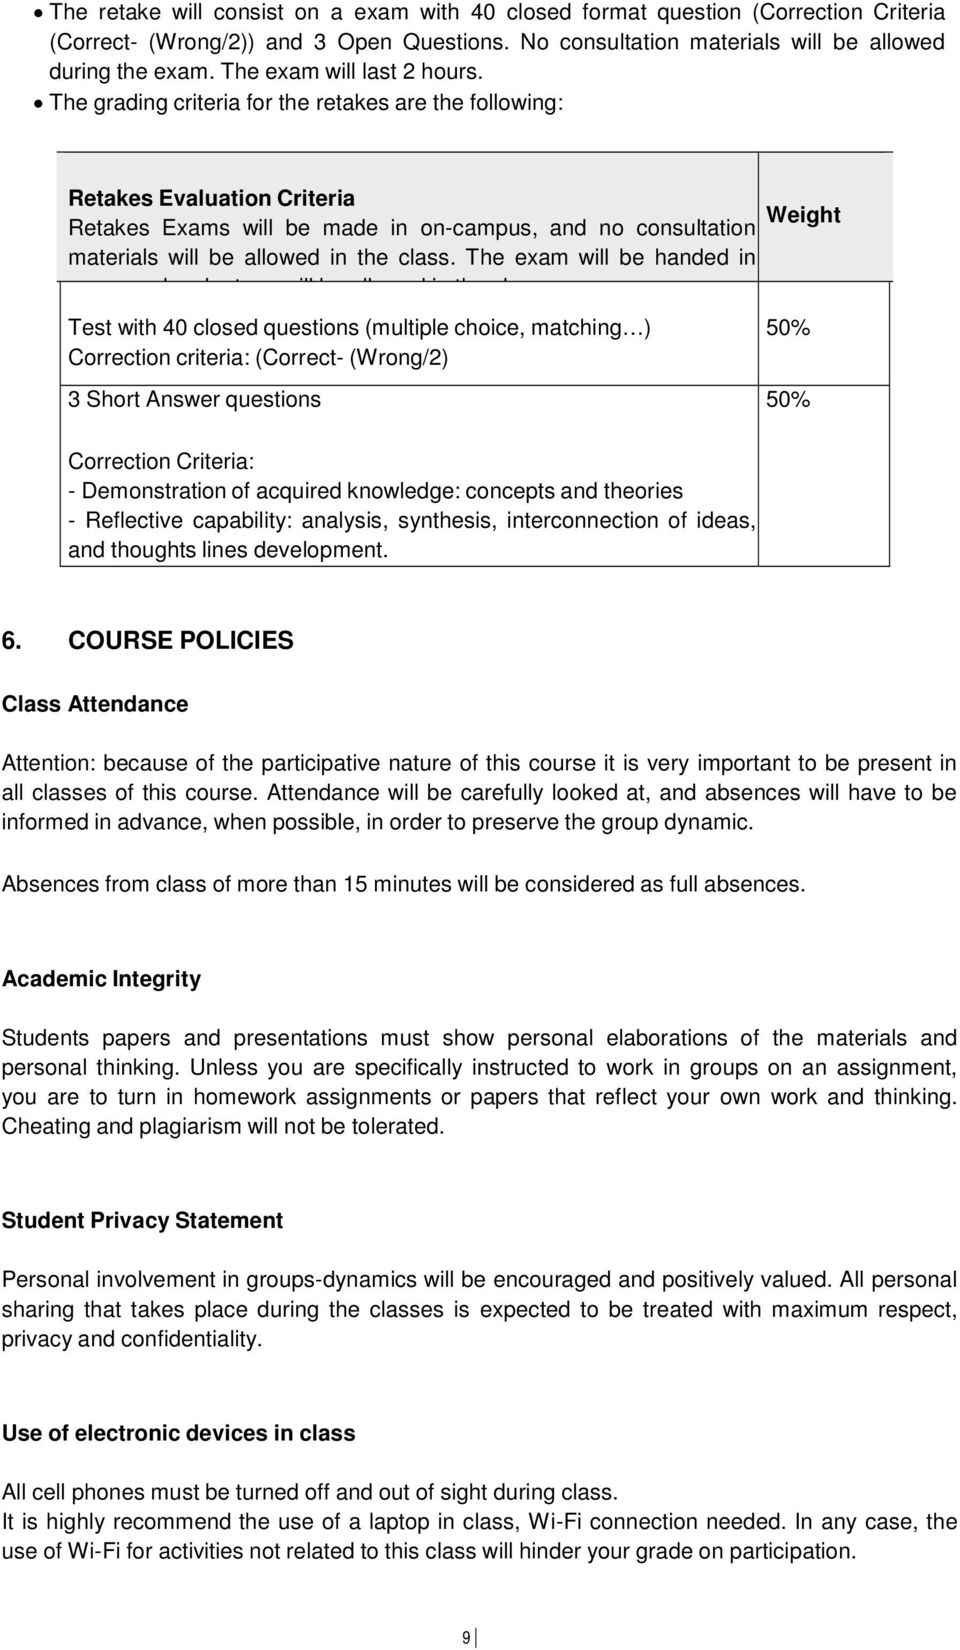 The grading criteria for the retakes are the following: Retakes Evaluation Criteria Retakes Exams will be made in on-campus, and no consultation materials will be allowed in the class.